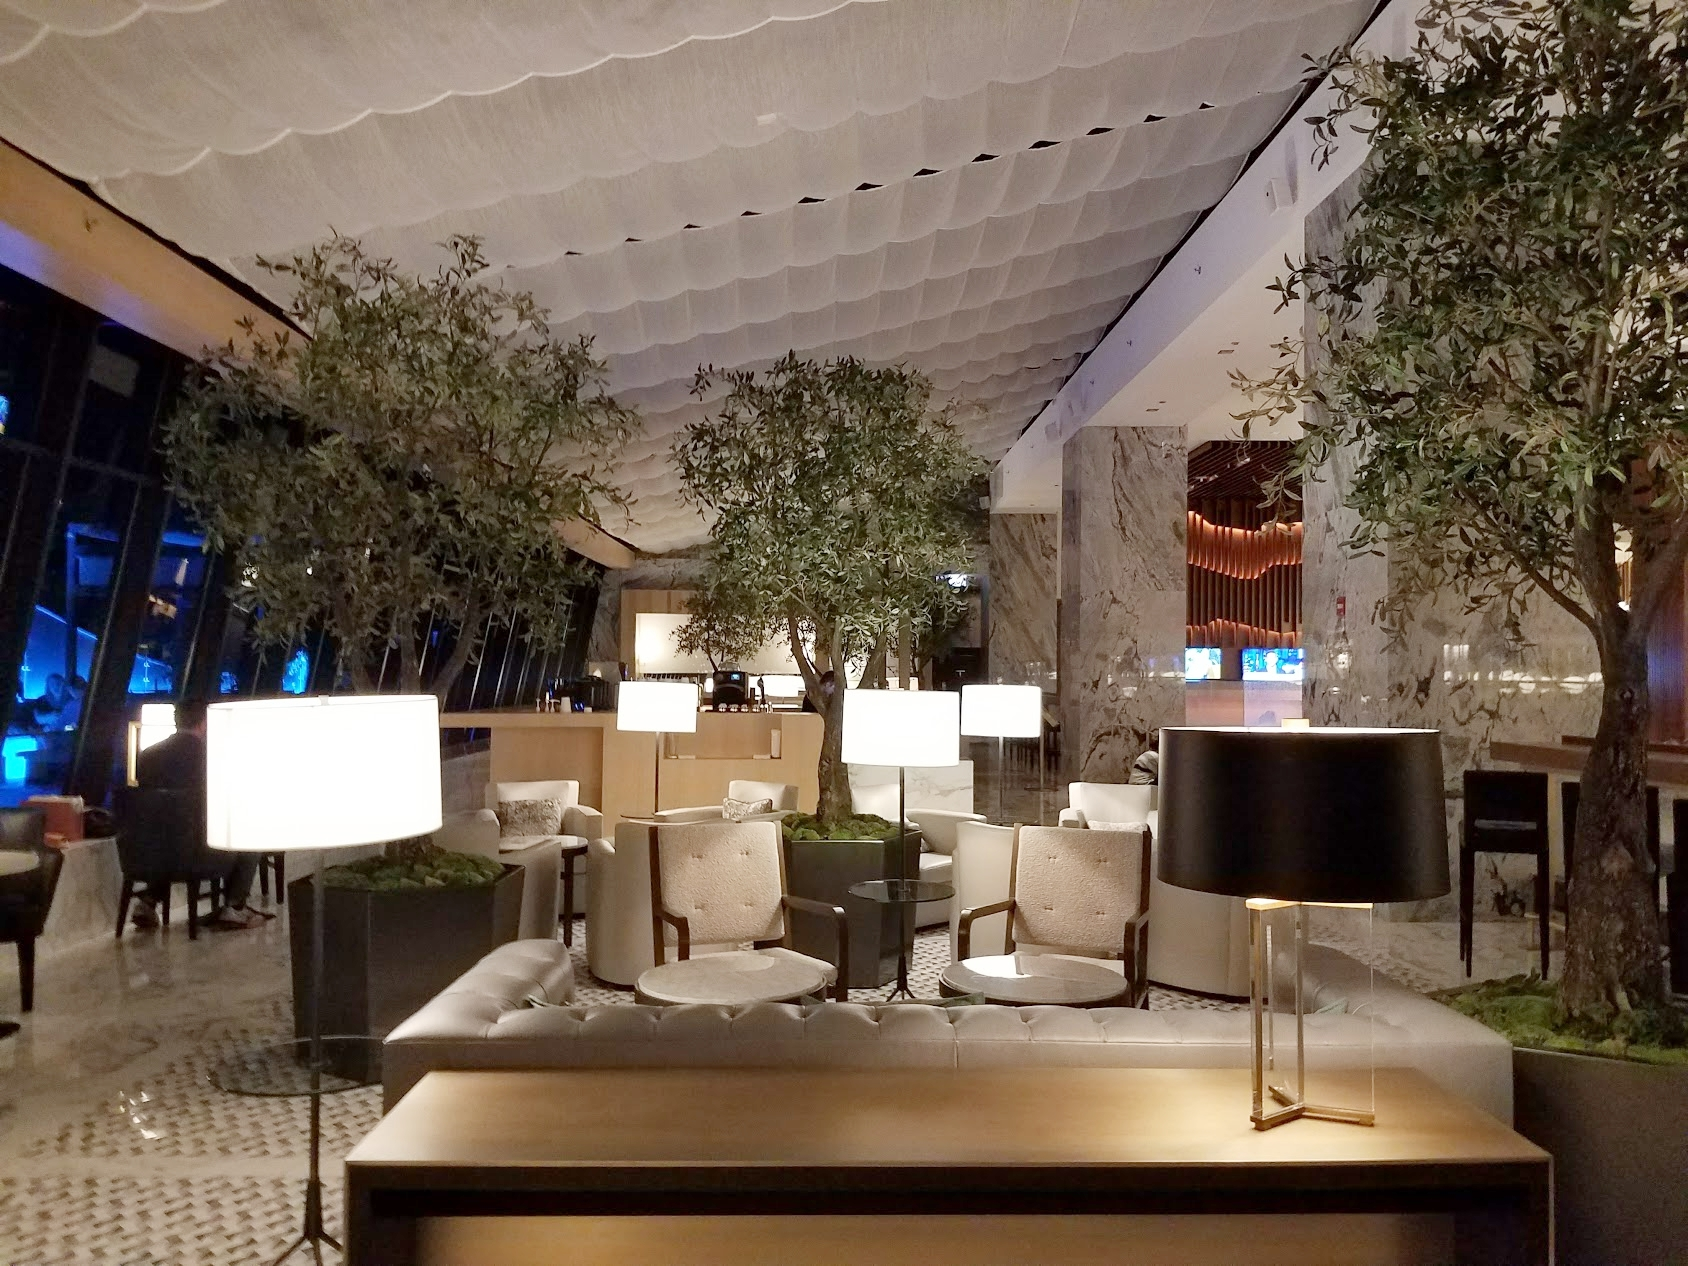 The Ritz Carlton Chicago cafe at night. LOVE.